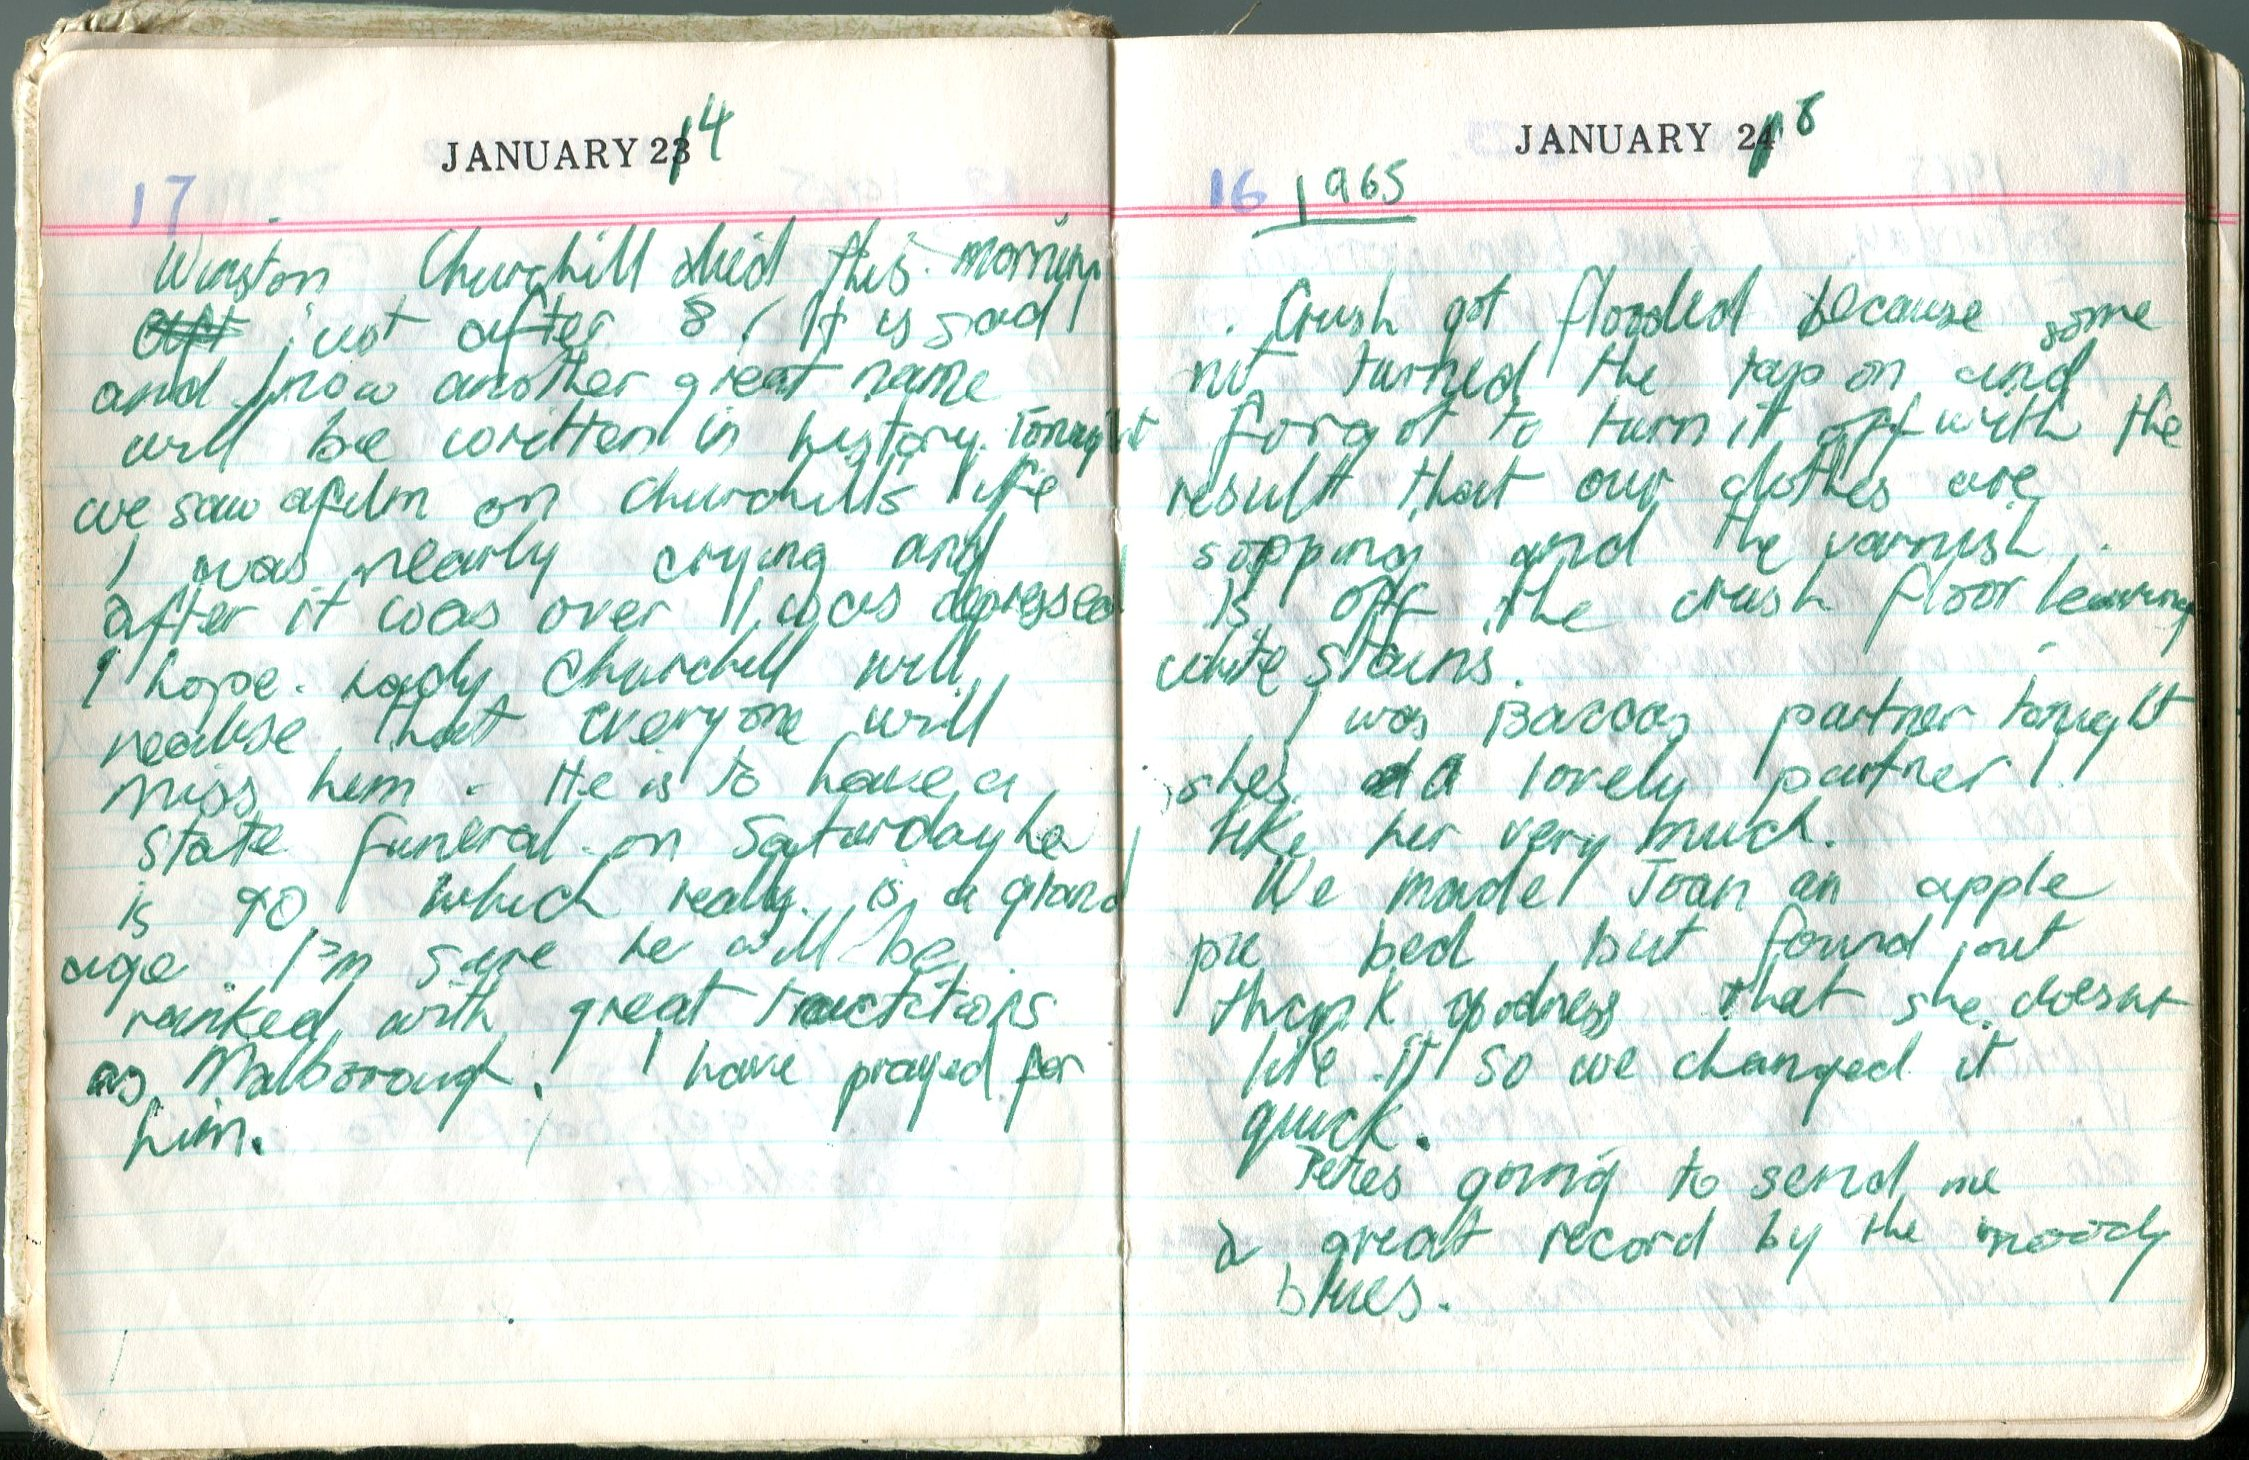 Jennifer Hutcheson's diary, January 1965